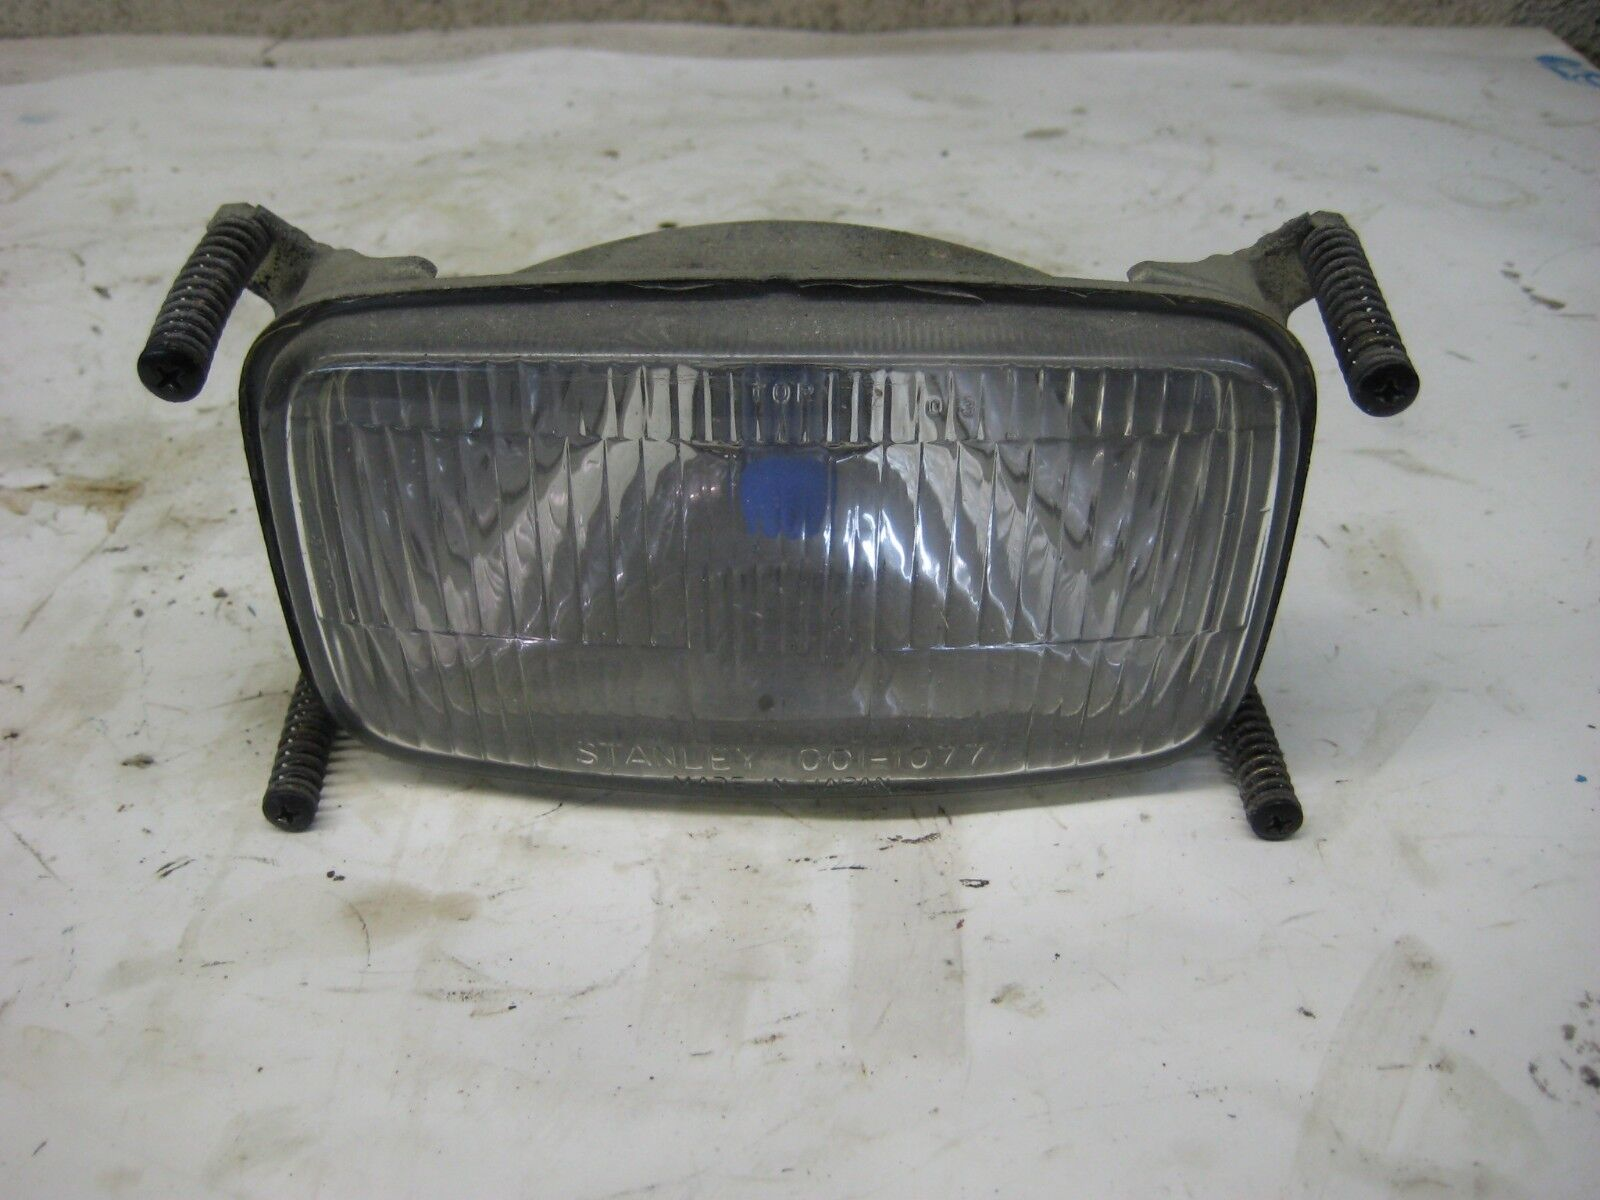 1987 Polaris Indy 400 Snowmobile Headlight Assembly